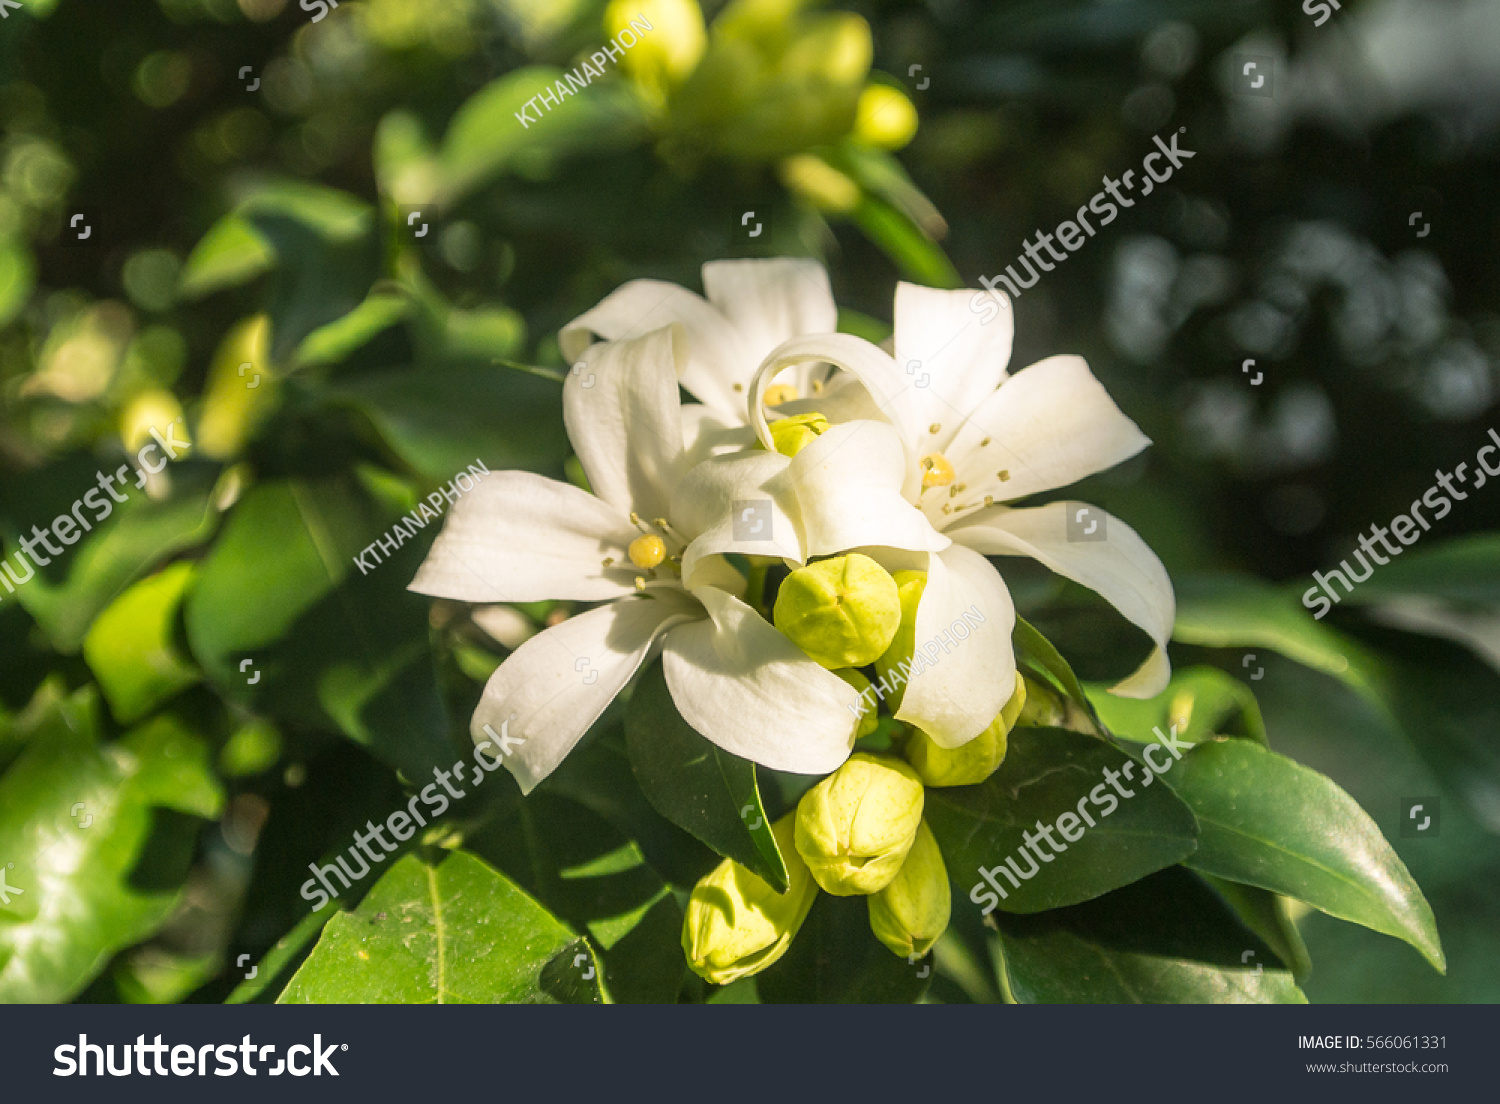 Murraya Paniculata Is A Tropical Evergreen Plant Bearing Small